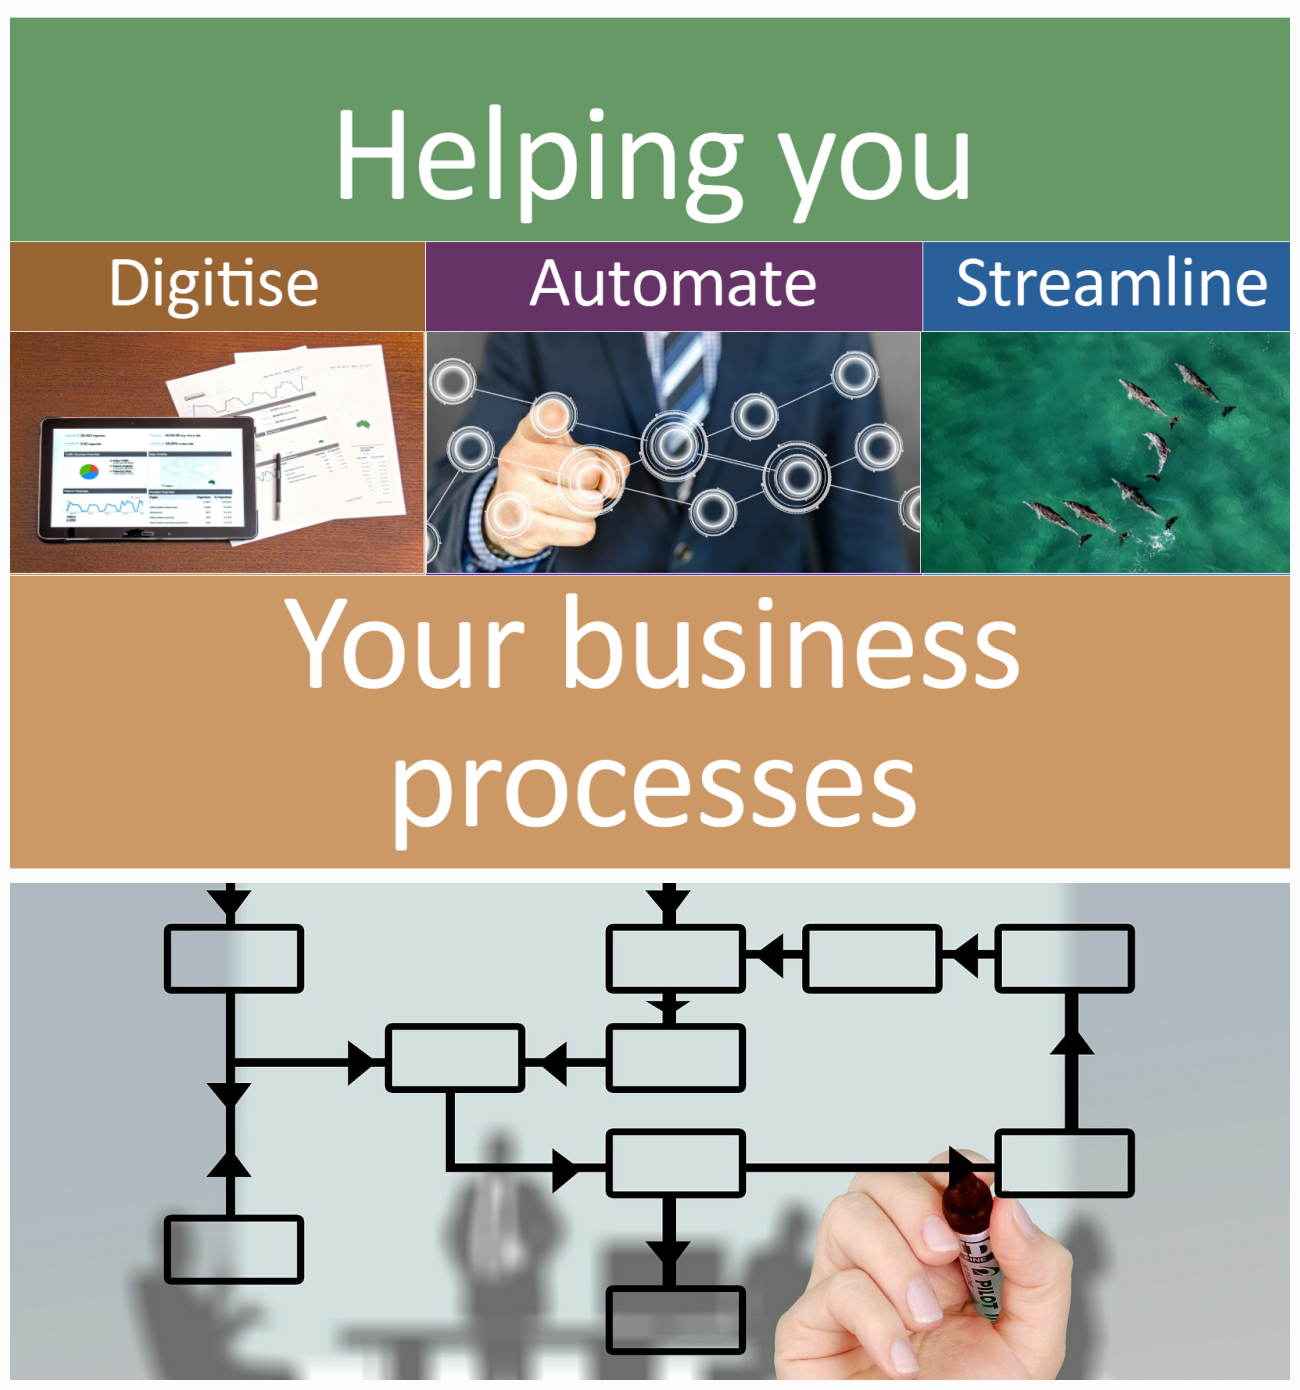 ZEST I-O ERP MRP CRM Software Engineering Manufacturing Project SMEs Digitise Automate Streamline Business Processes